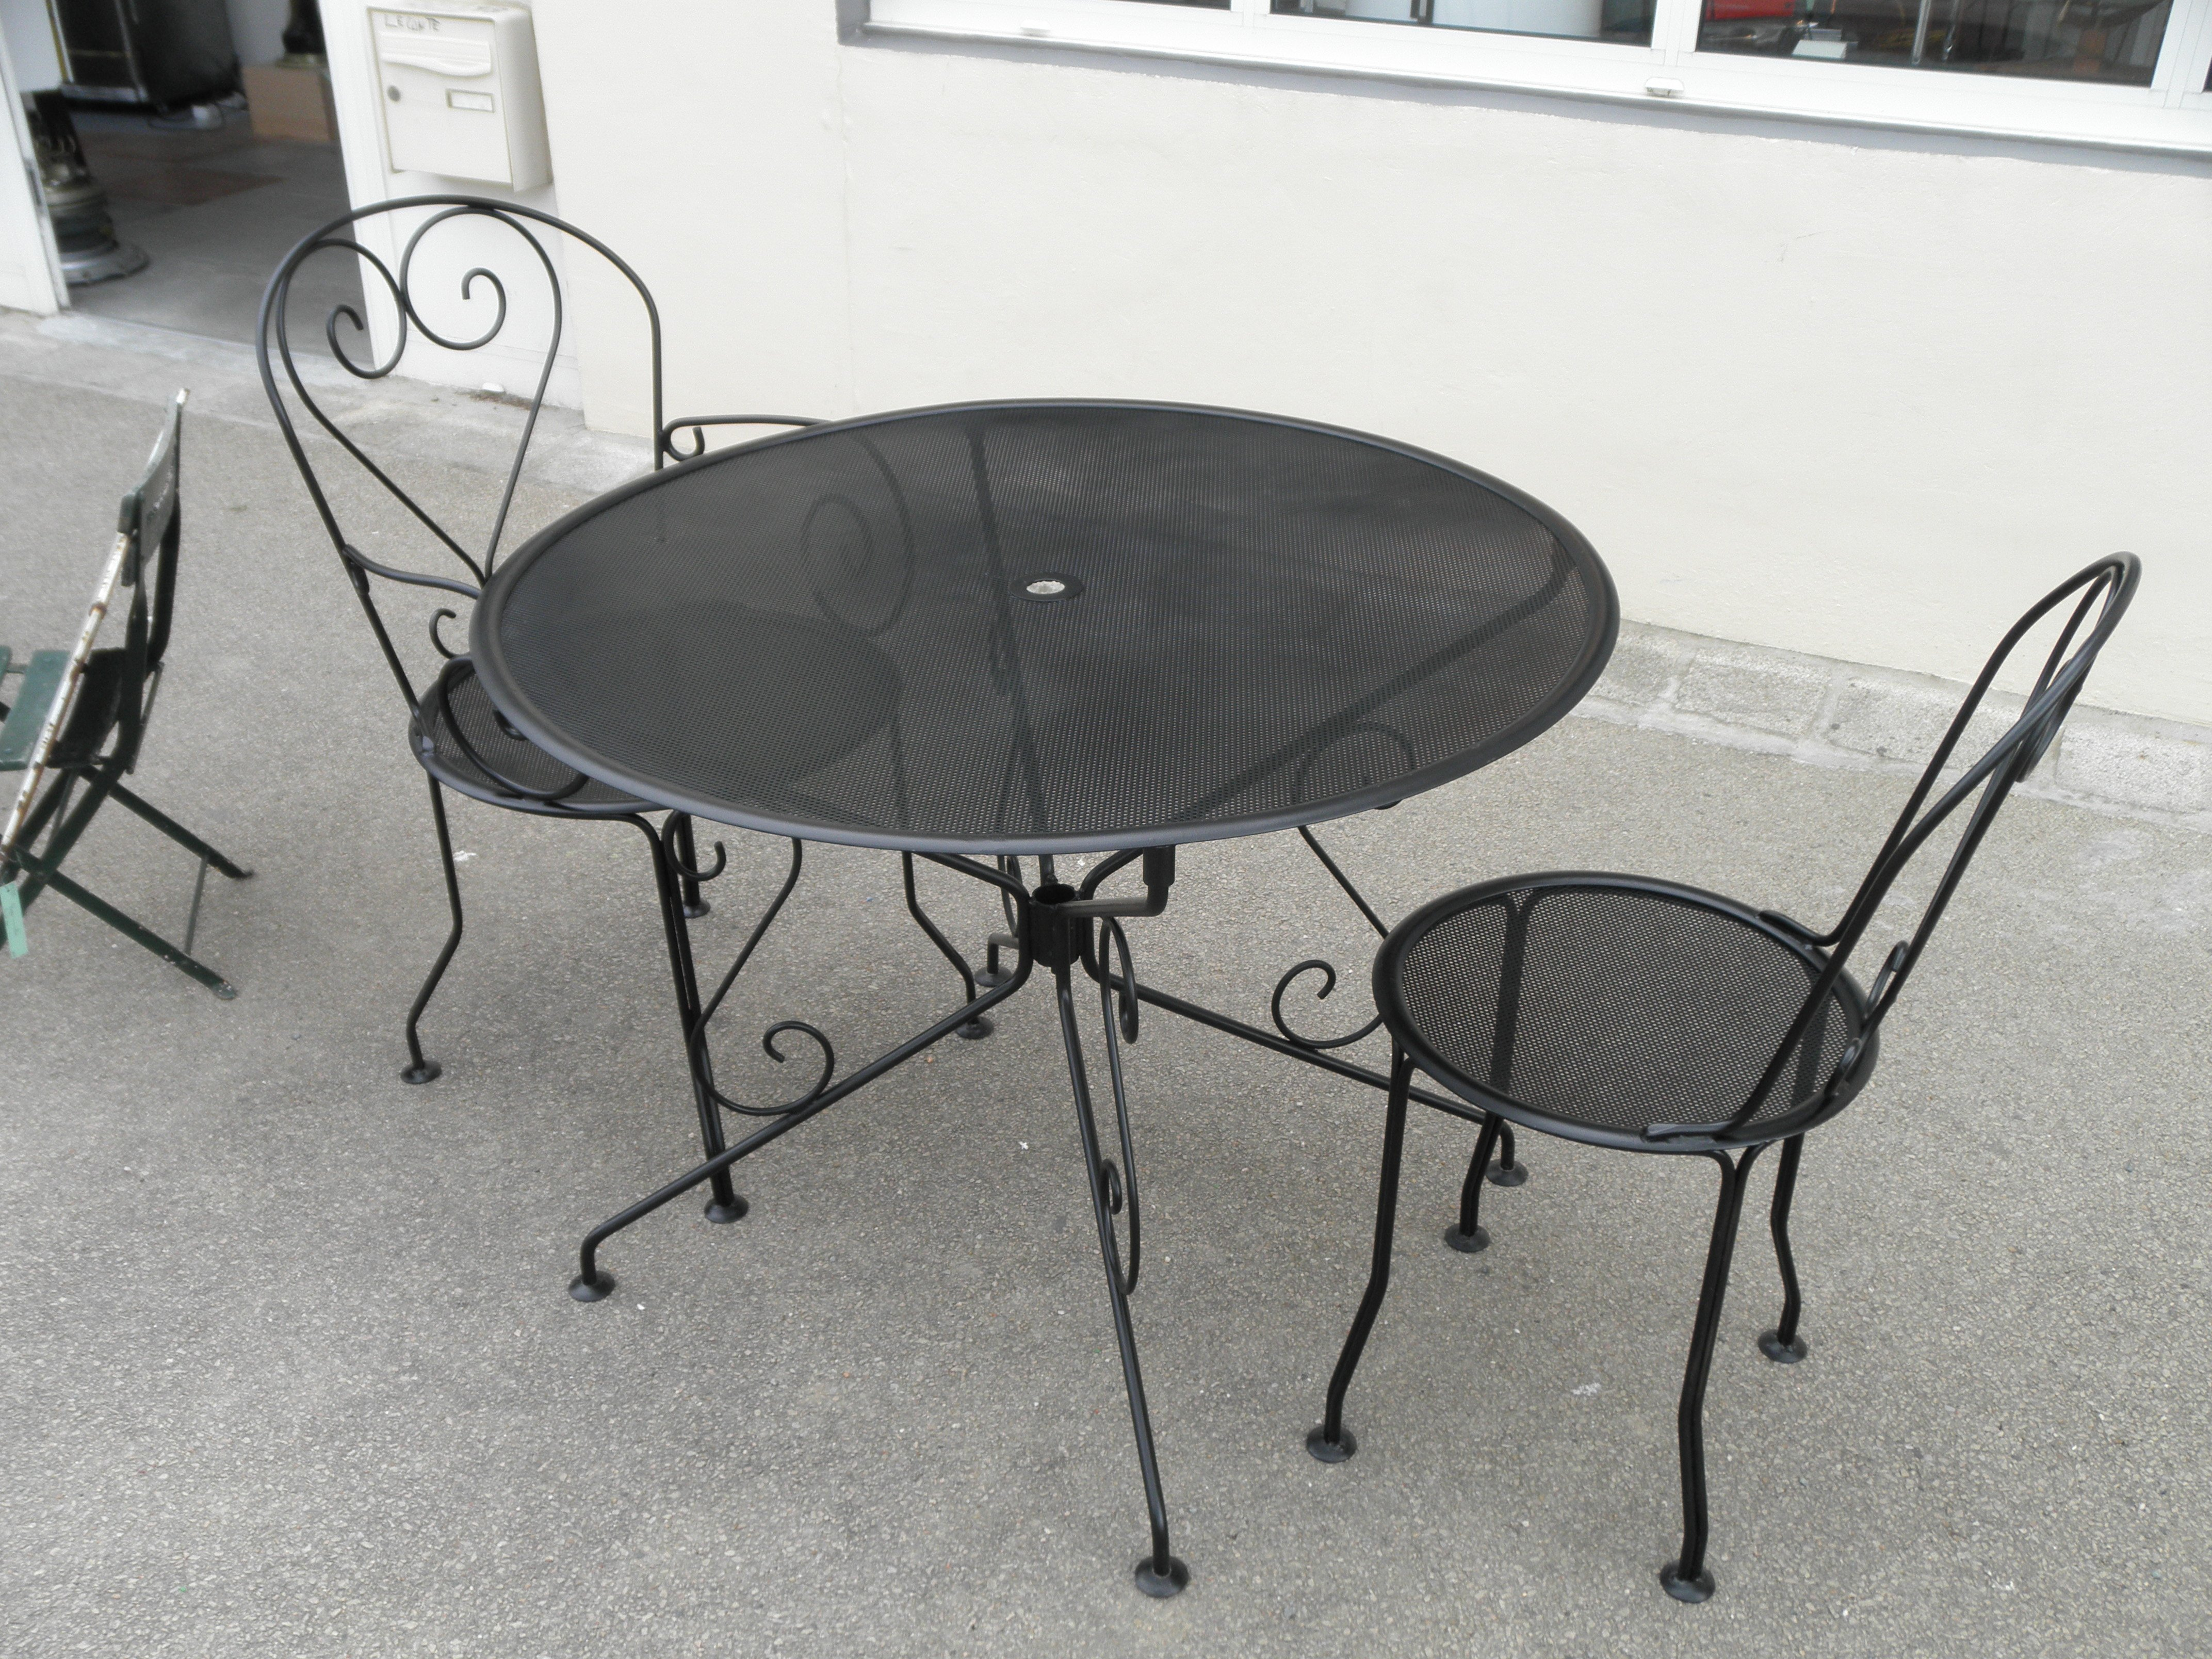 Salon de jardin table ronde fer forg achat salon de - Salon de jardin table ronde ...